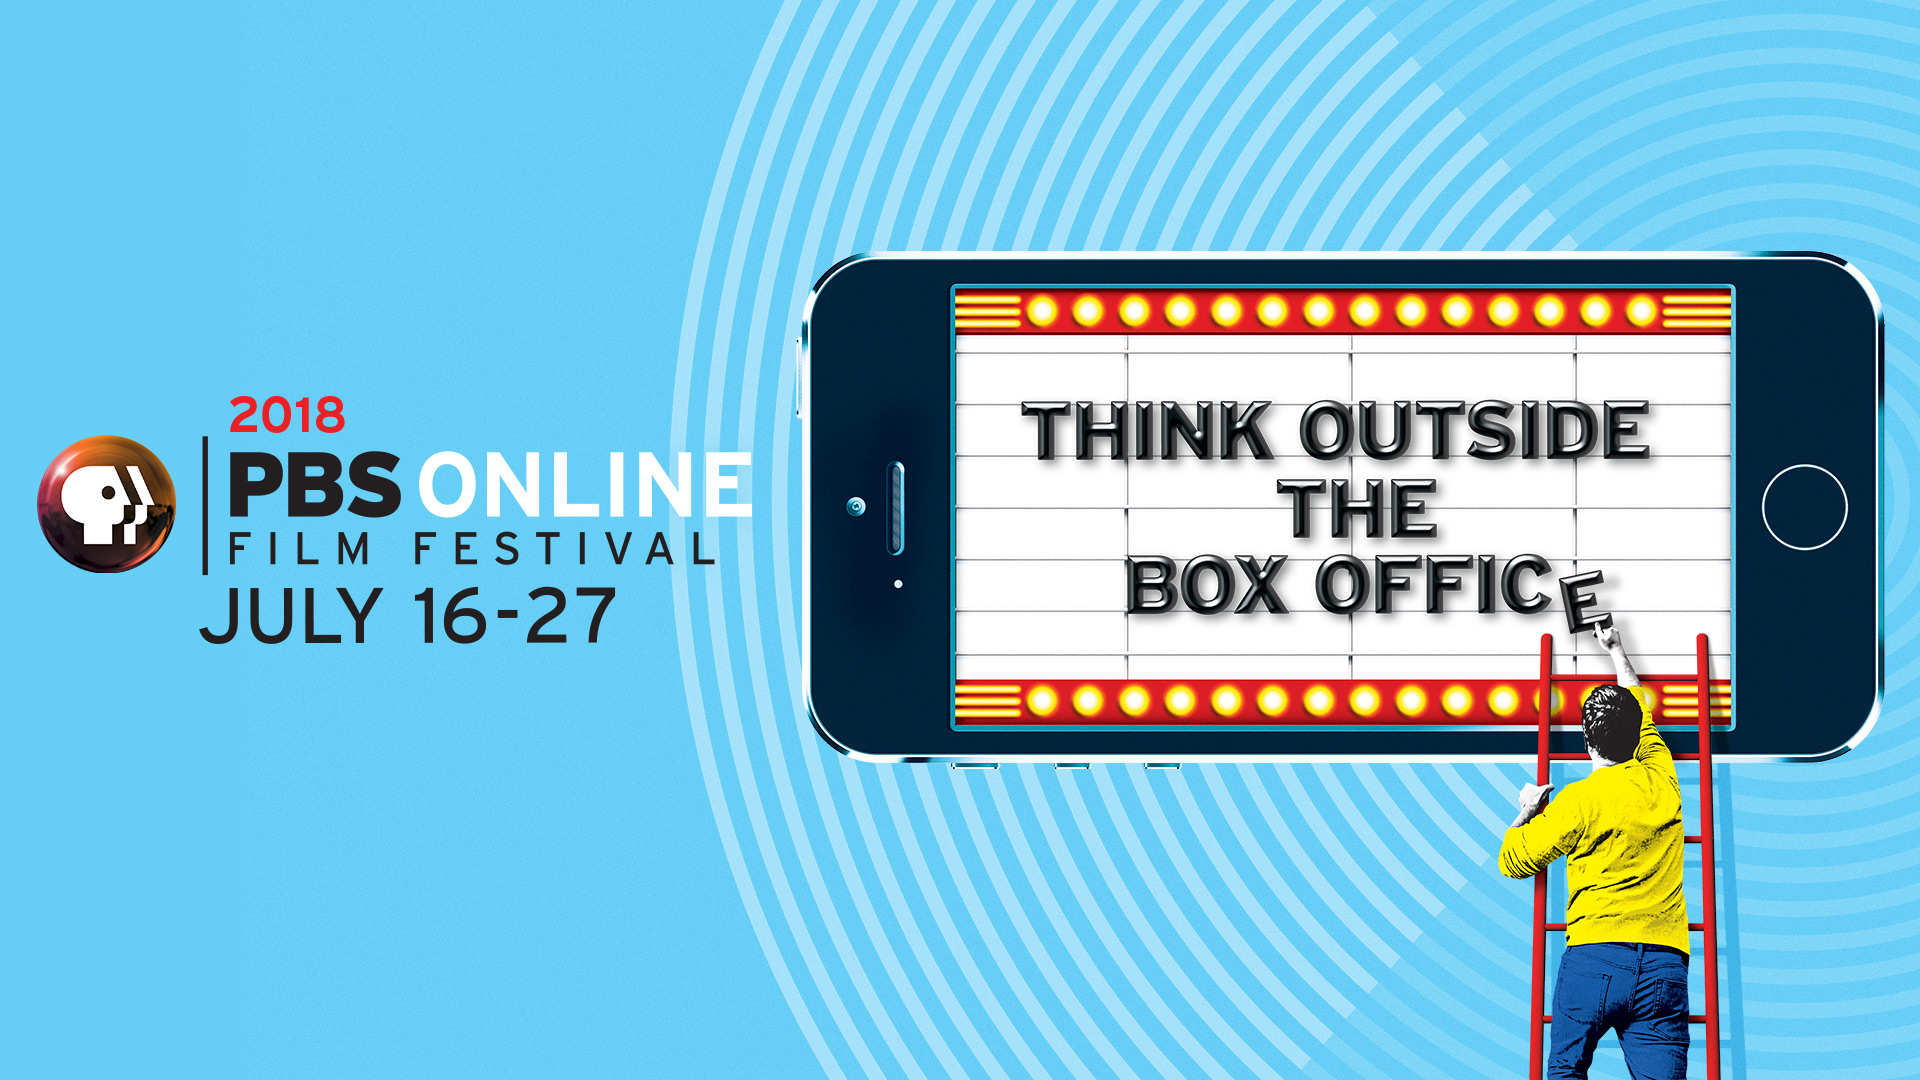 The PBS Online Film Festival is back!